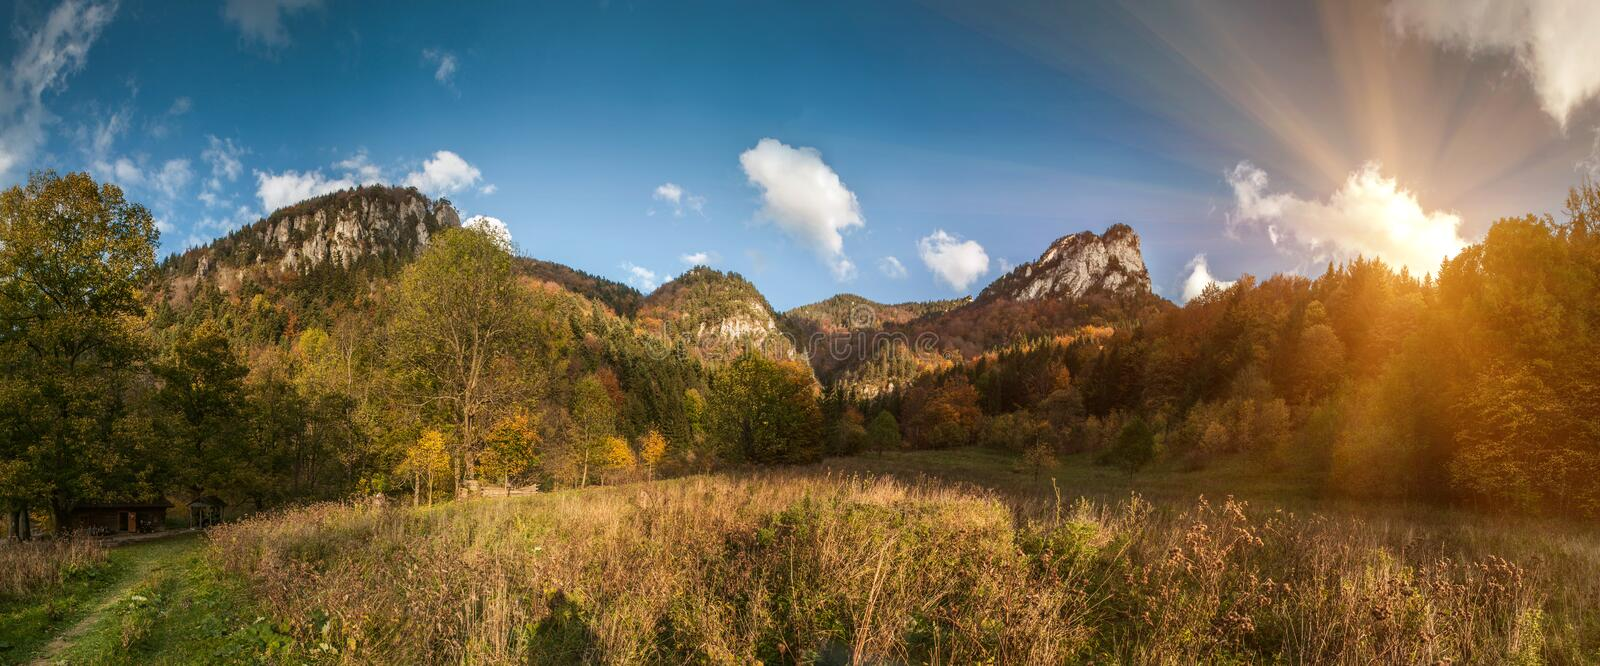 Wide angle panorama of autumnal mountain landscape royalty free stock photos